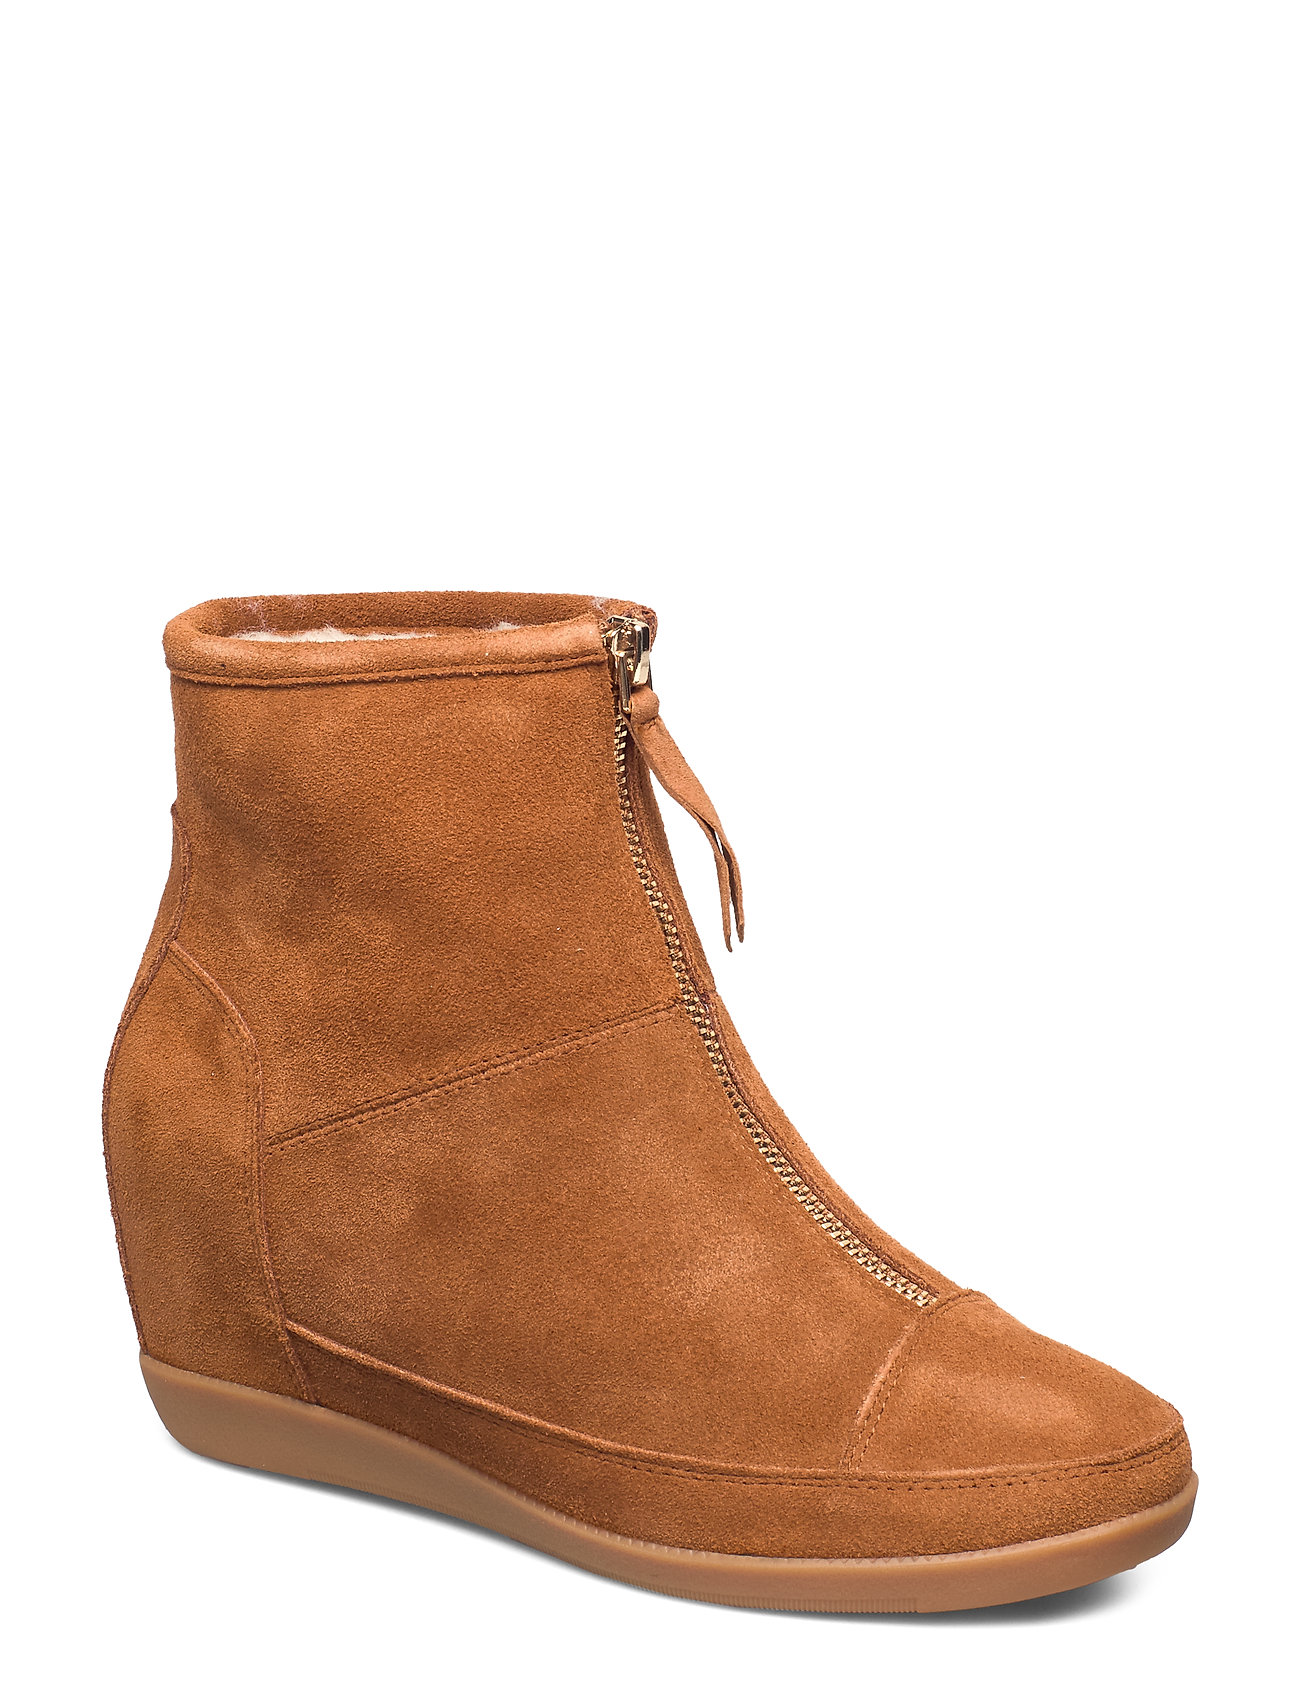 Image of Emmy Wool Boot Shoes Boots Ankle Boots Ankle Boots Flat Heel Brun Shoe The Bear (3223703925)